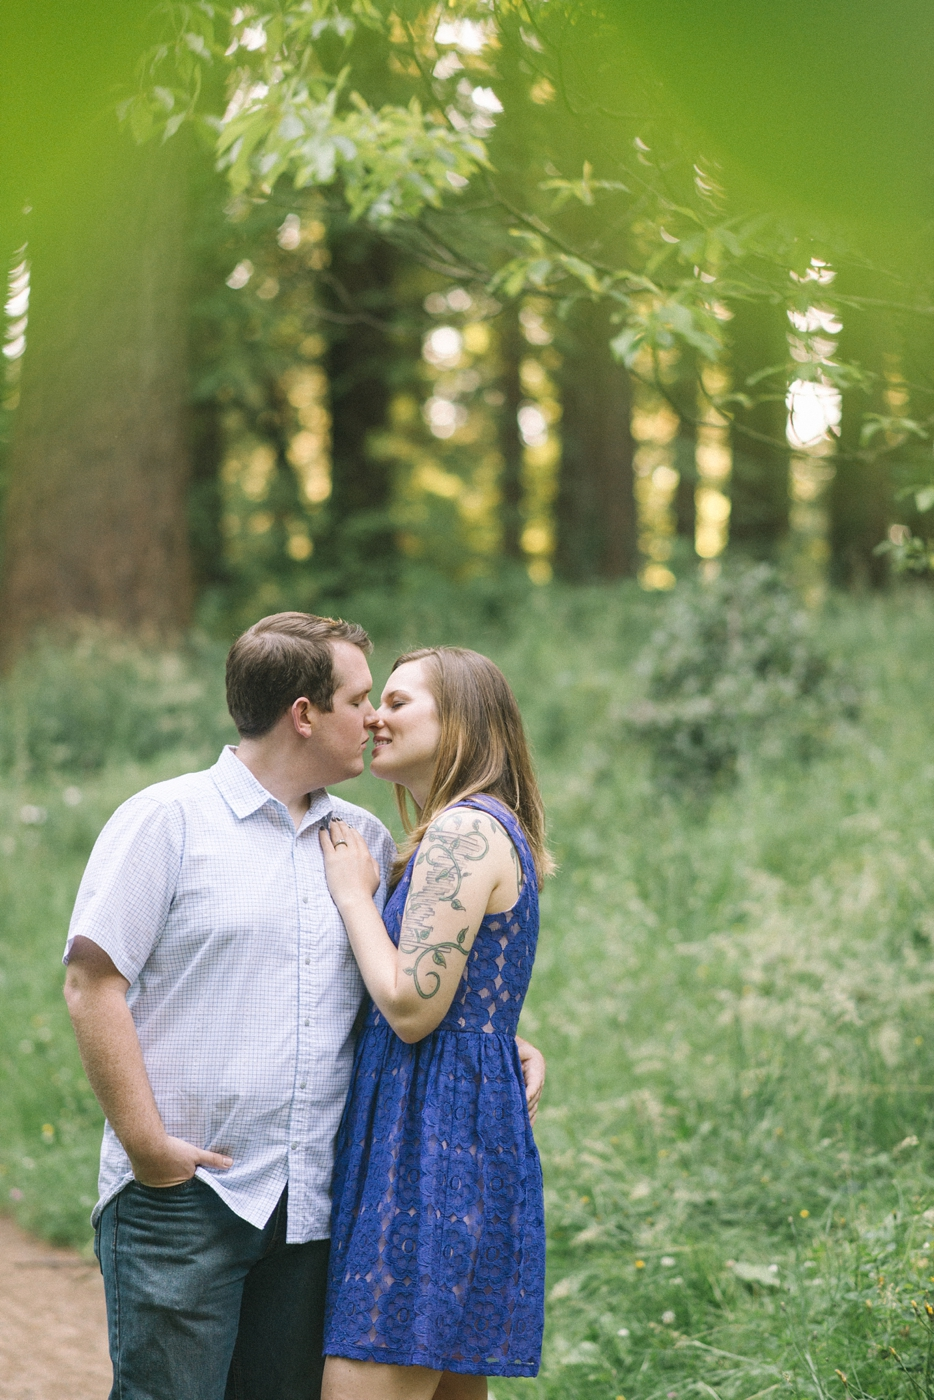 engagement-photography-portland-oregon-hoyt-arboretum-washington-park-romantic-kiss-couples-portraits-nature-natural-light-forest-field-shelley-marie-photo-11